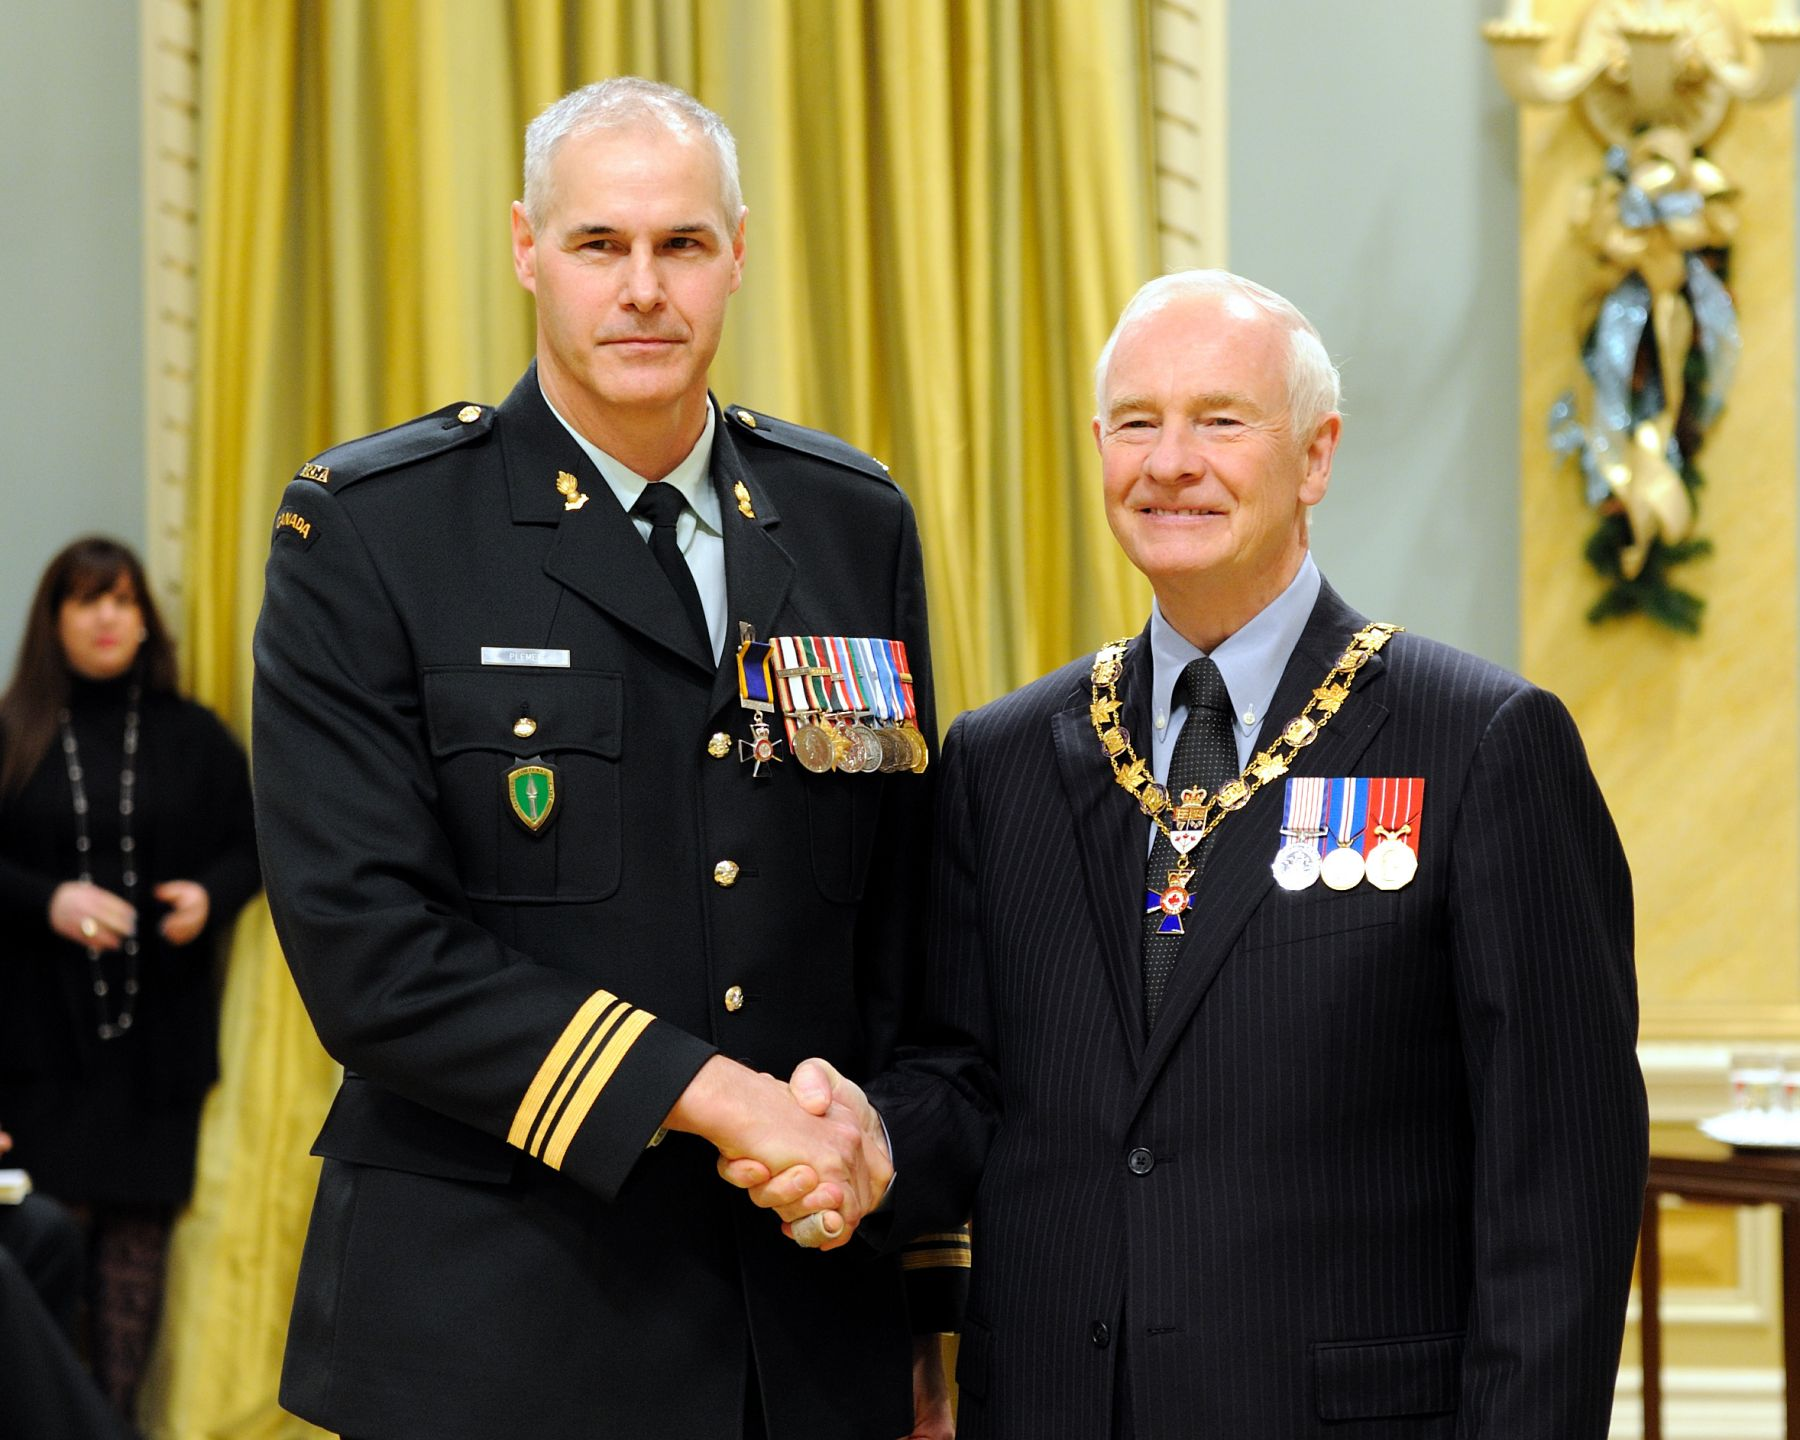 His Excellency presented the Order of Military Merit at the Member level (M.M.M.) to Captain Lorne Plemel, M.M.M., C.D., 4th Air Defence Regiment Royal Canadian Artillery, Moncton, New Brunswick.